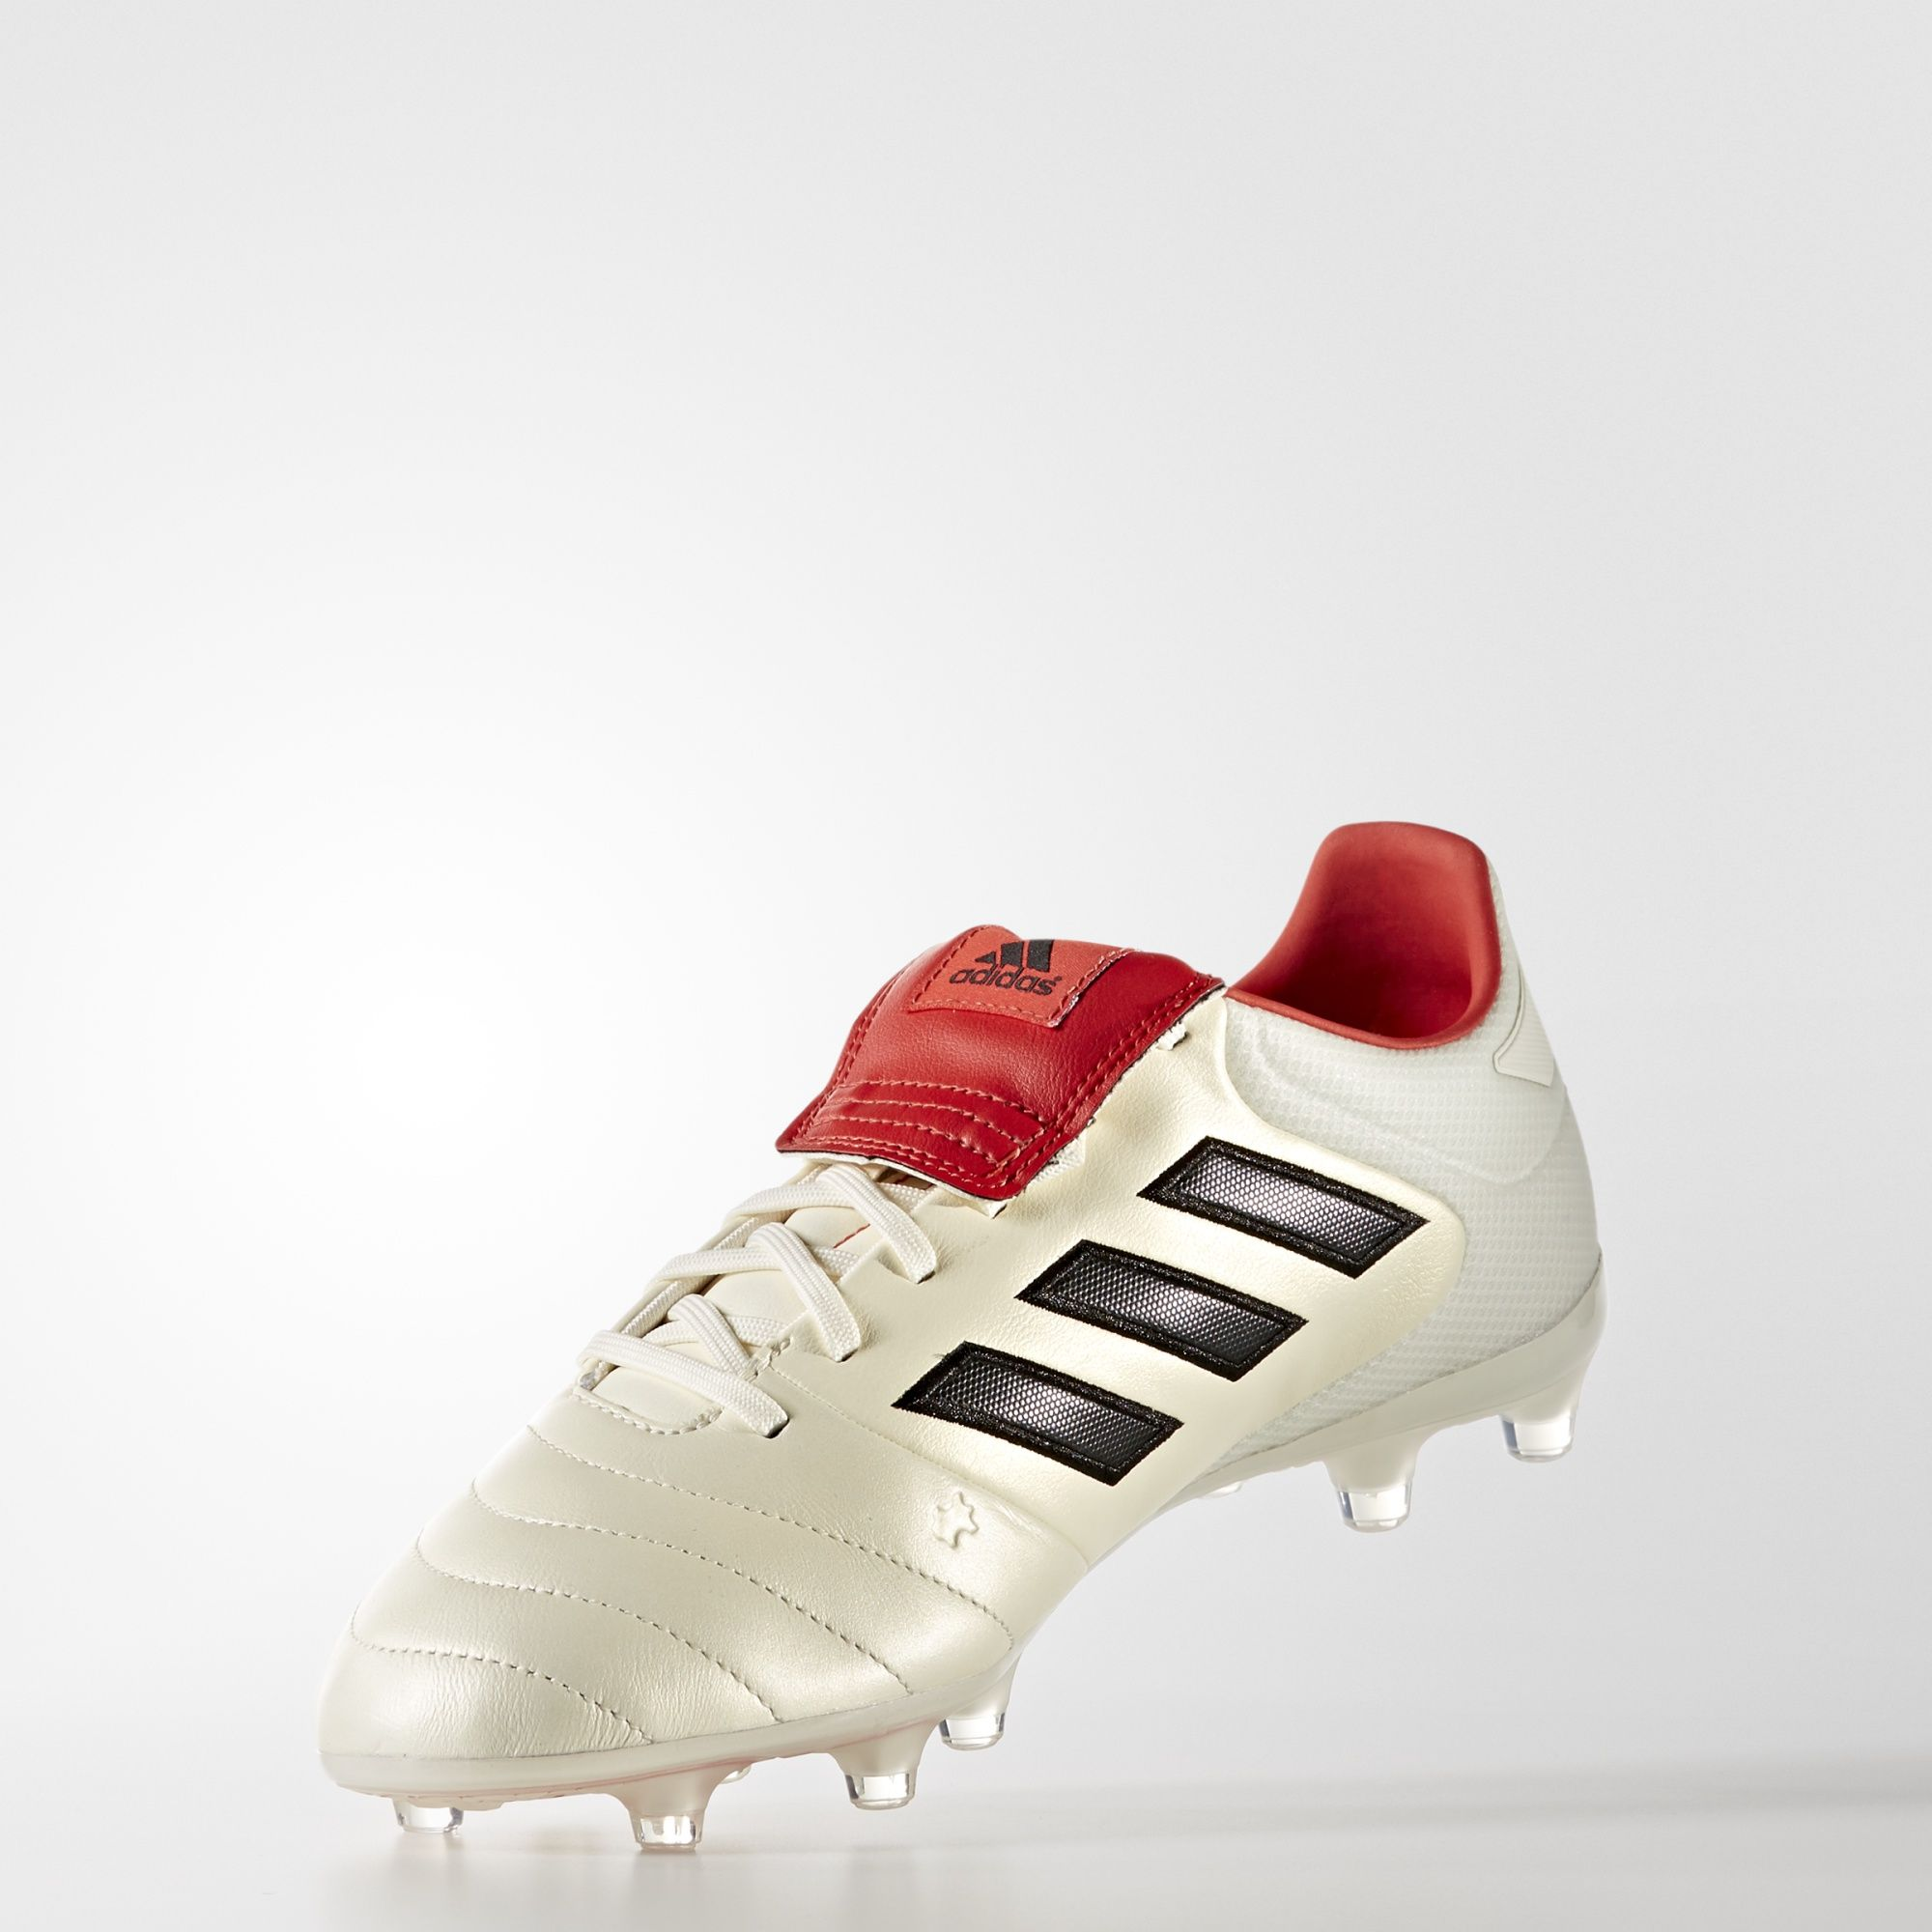 buy online 1df9c 962ac Index of  images stories adidas-copa-gloro-17-2 -firm-ground-boots-off-white-core-black-red